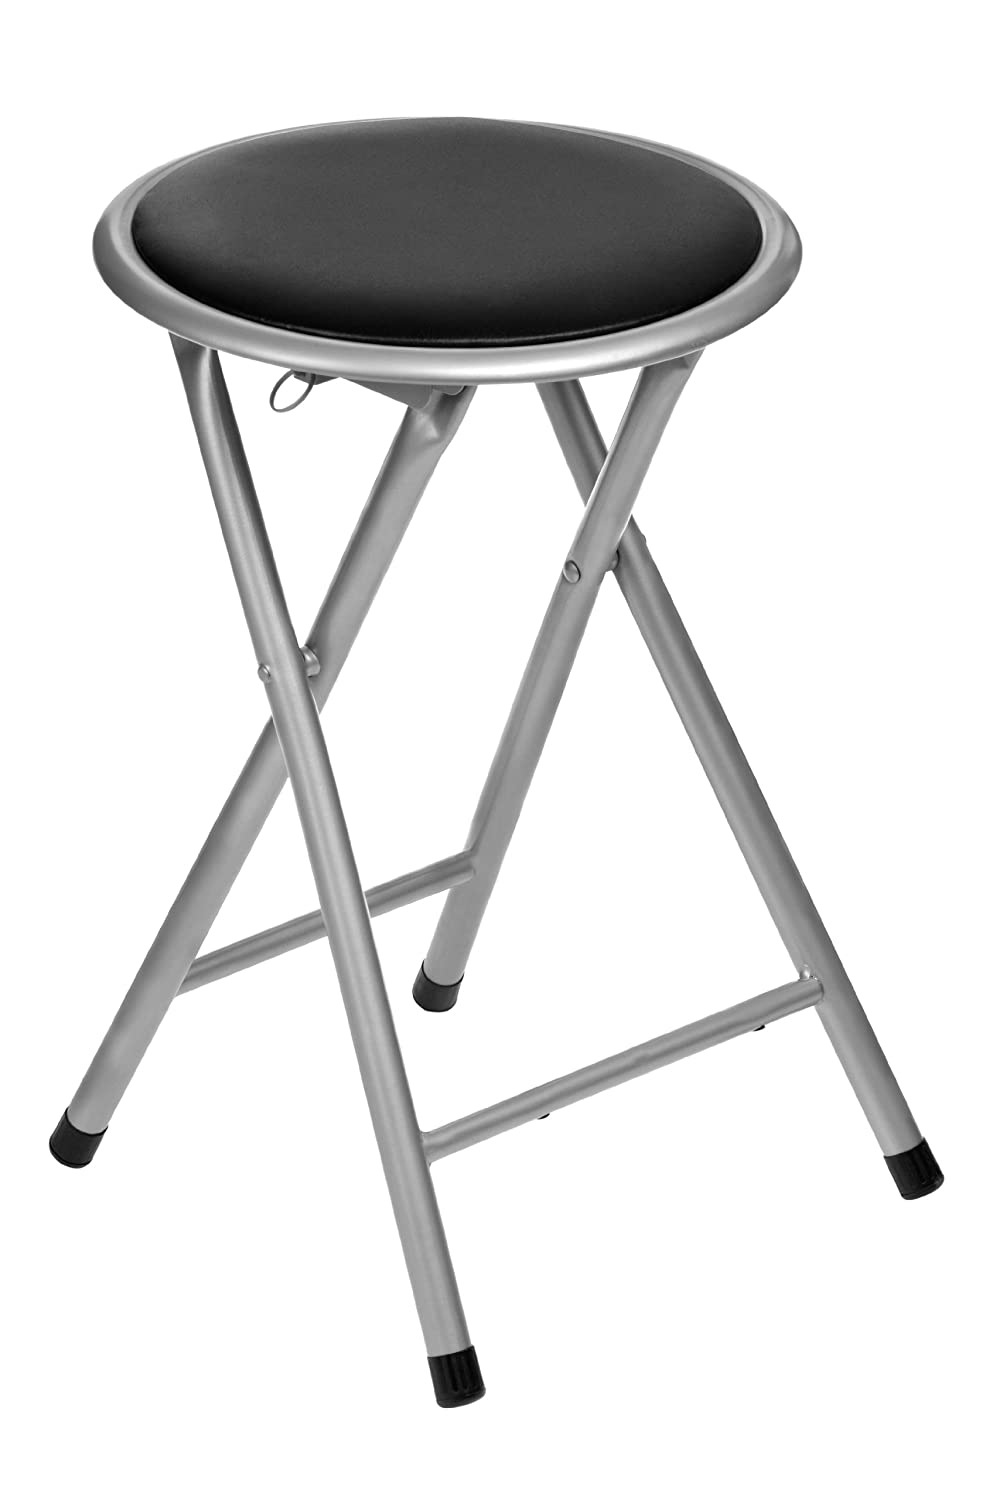 Premier Housewares Round Folding Stool   Black: Amazon.co.uk: Kitchen U0026 Home